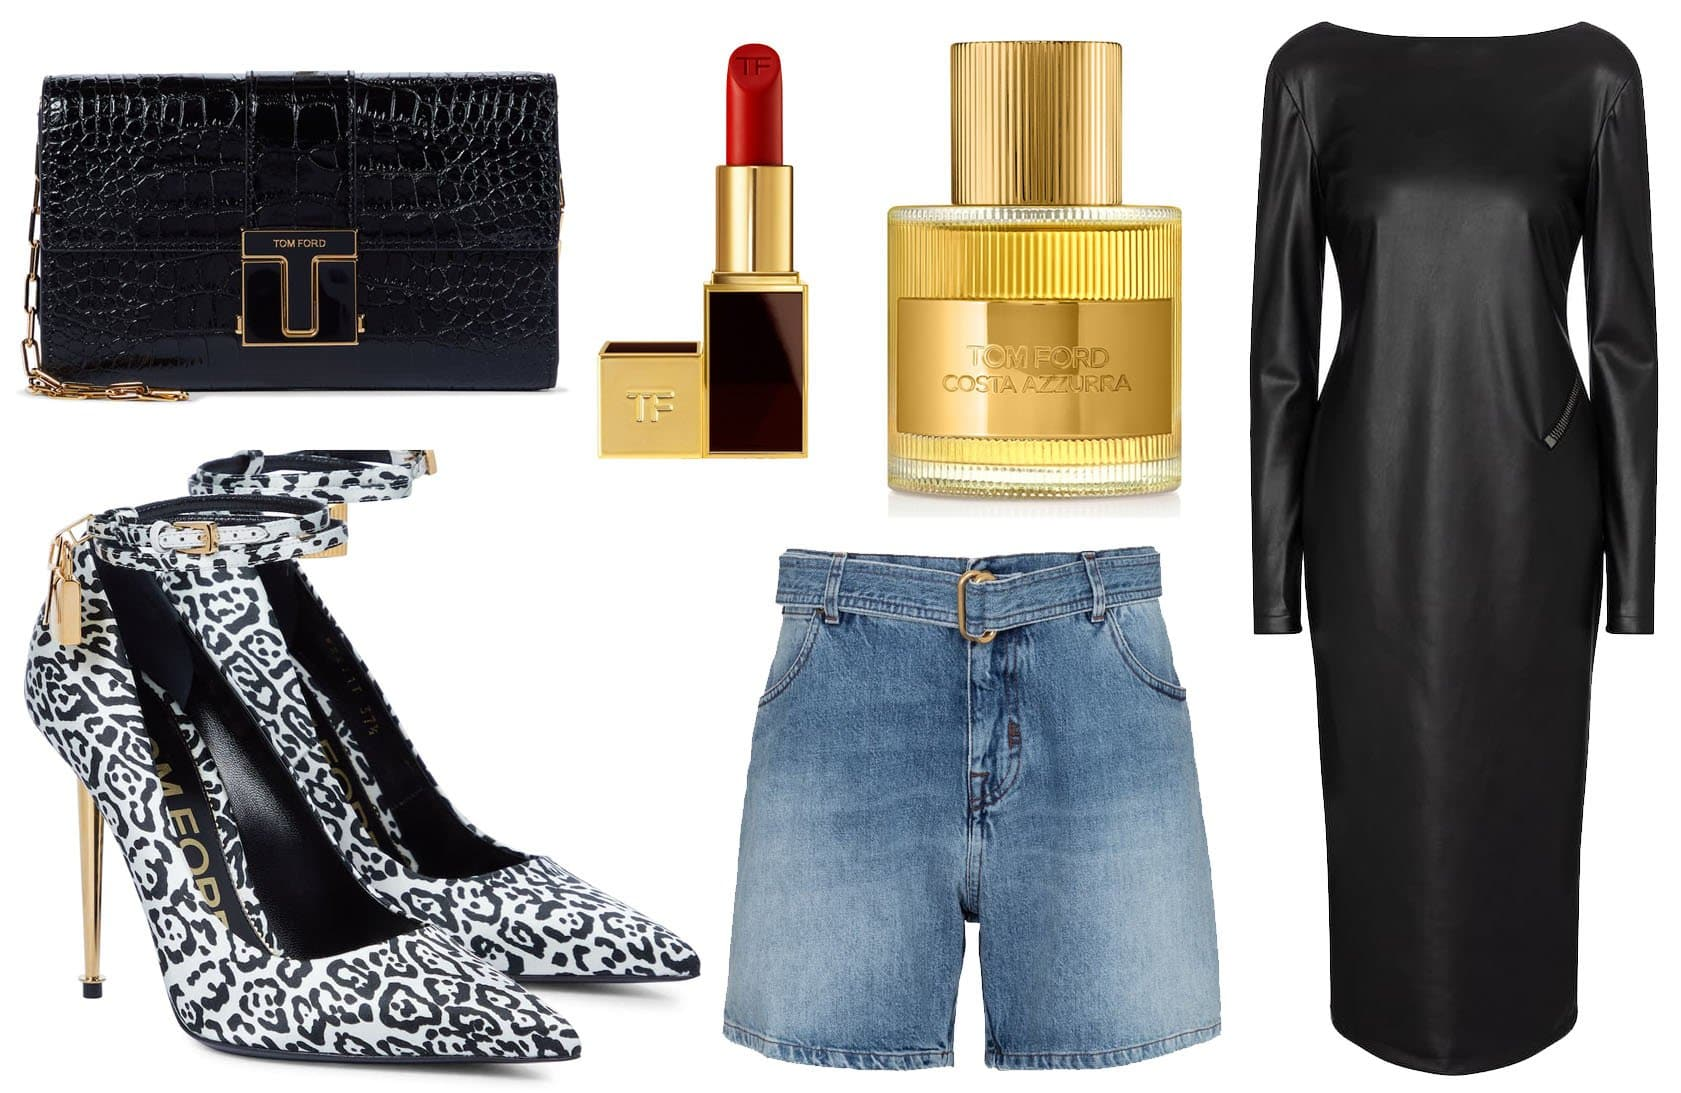 Tom Ford has everything from clothes, shoes, and accessories to makeups and perfumes